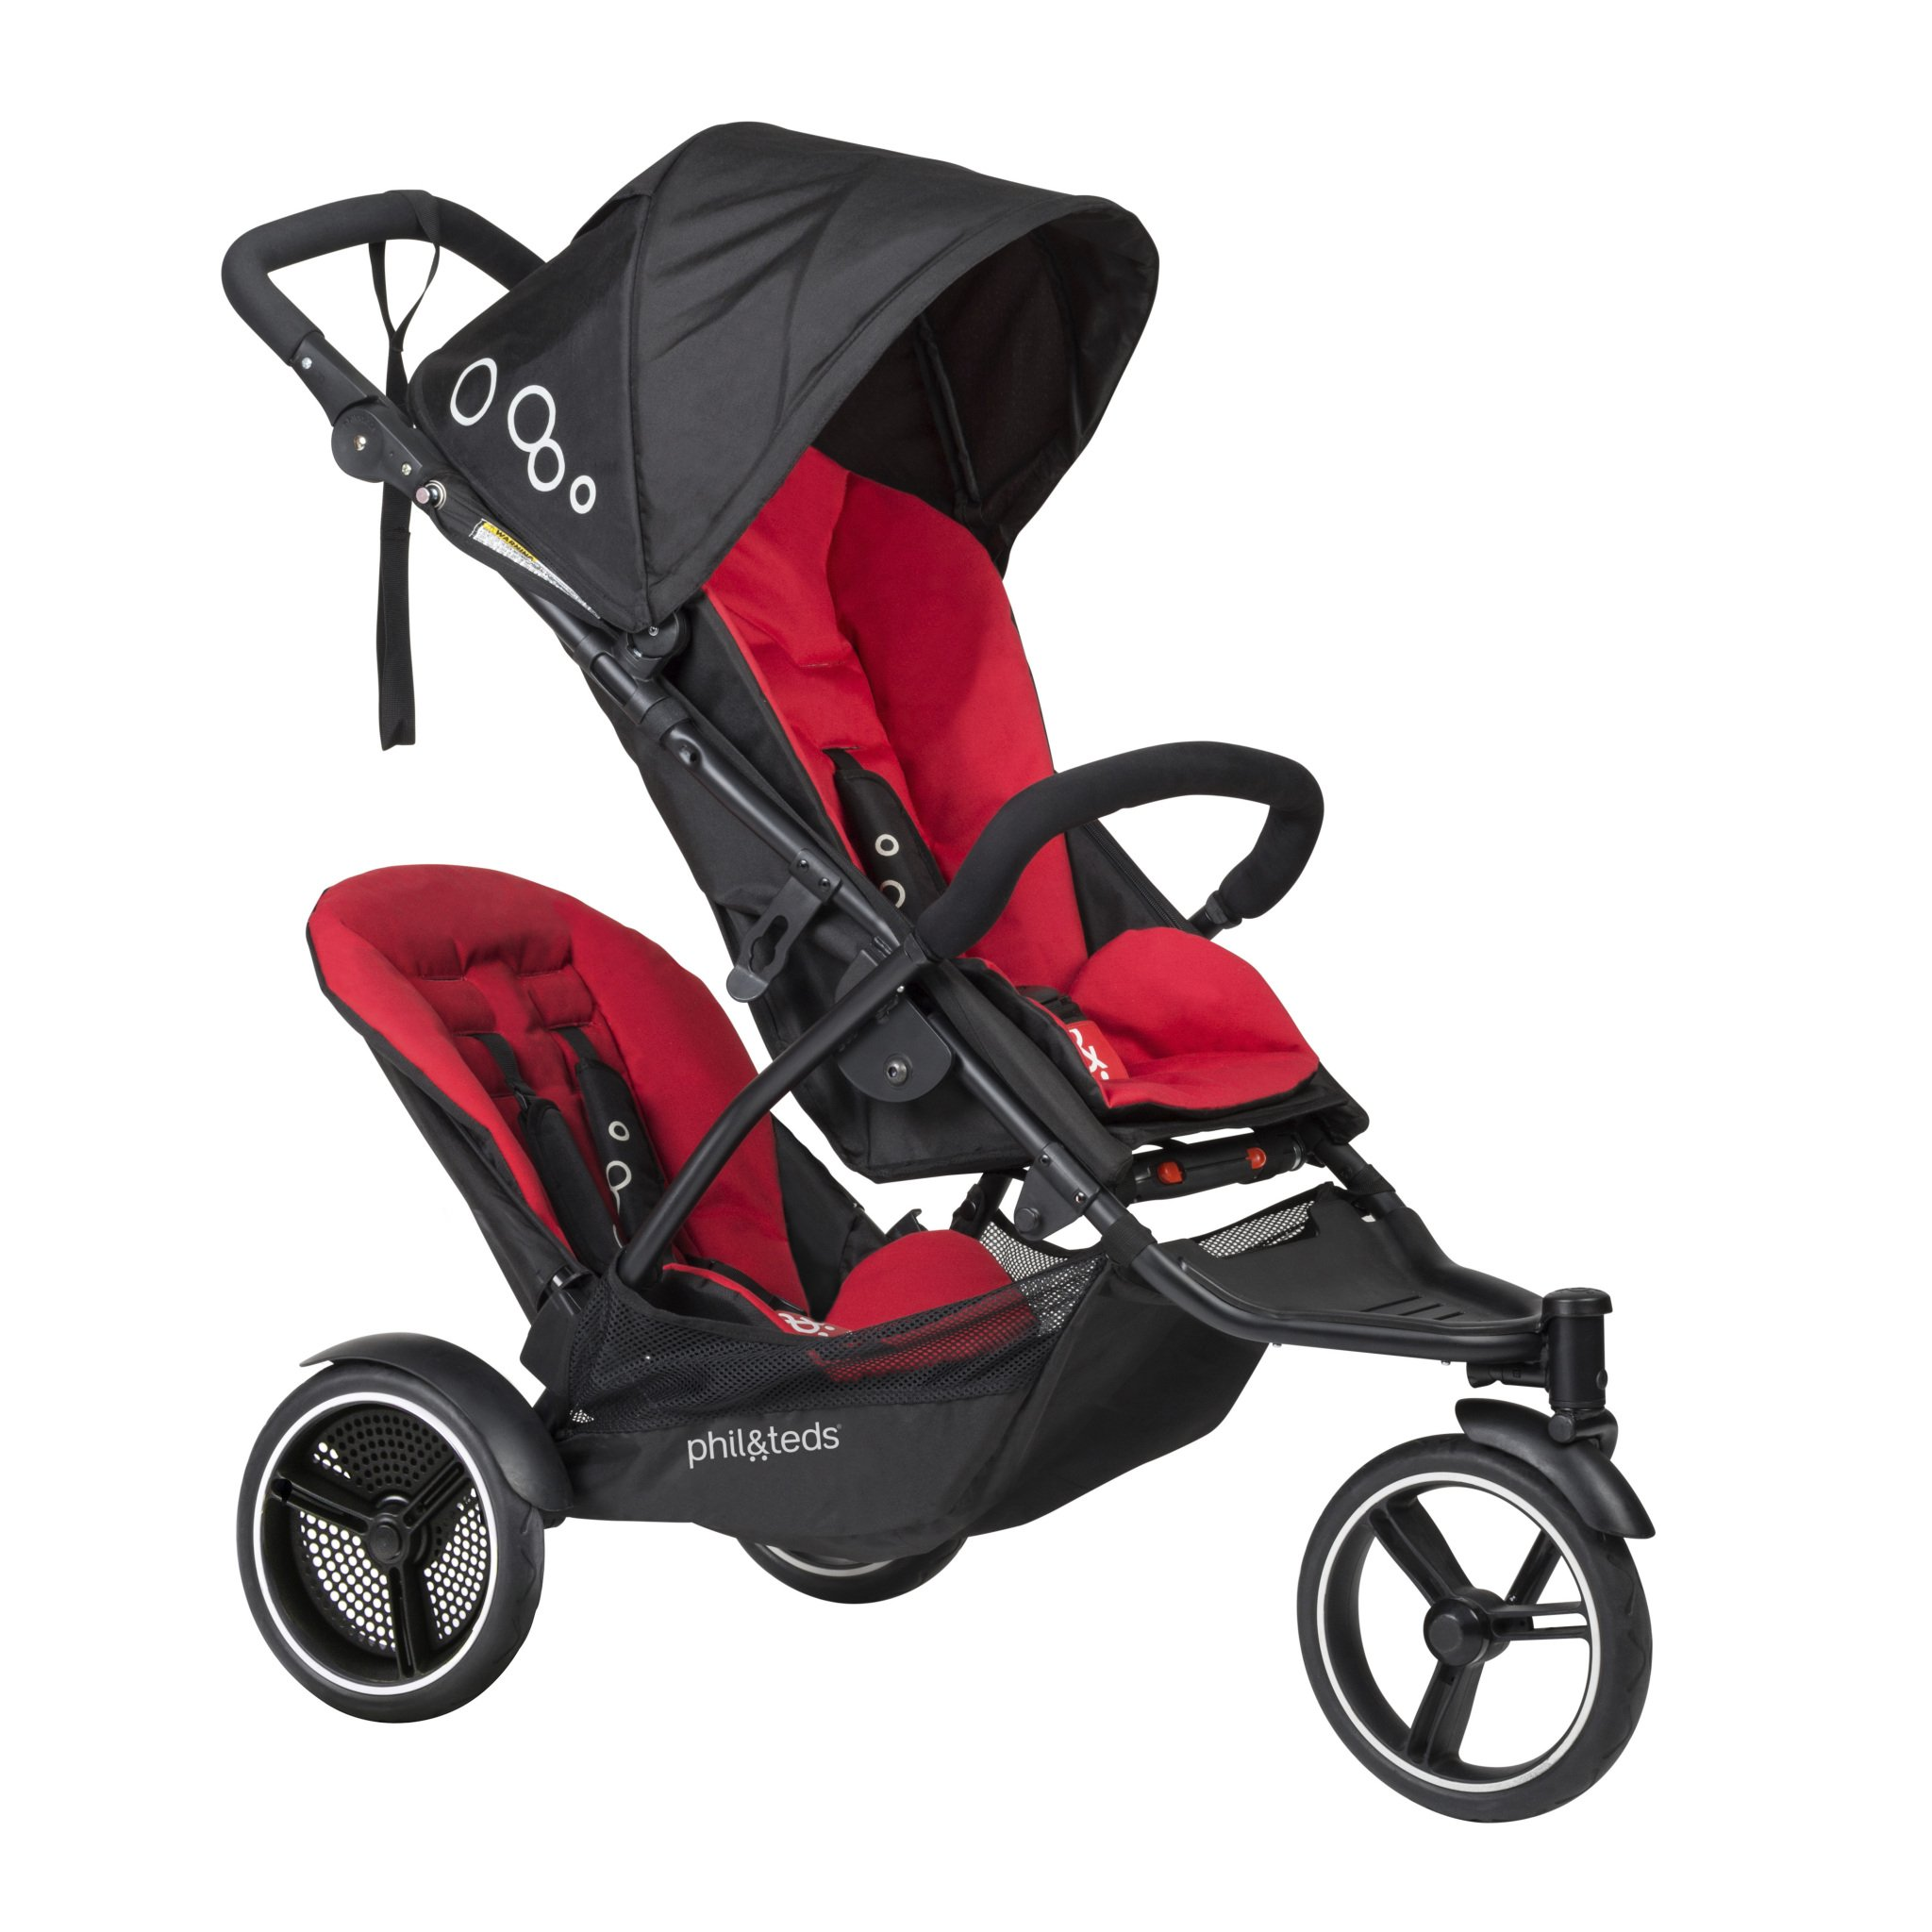 phil teds Compact Inline Stroller